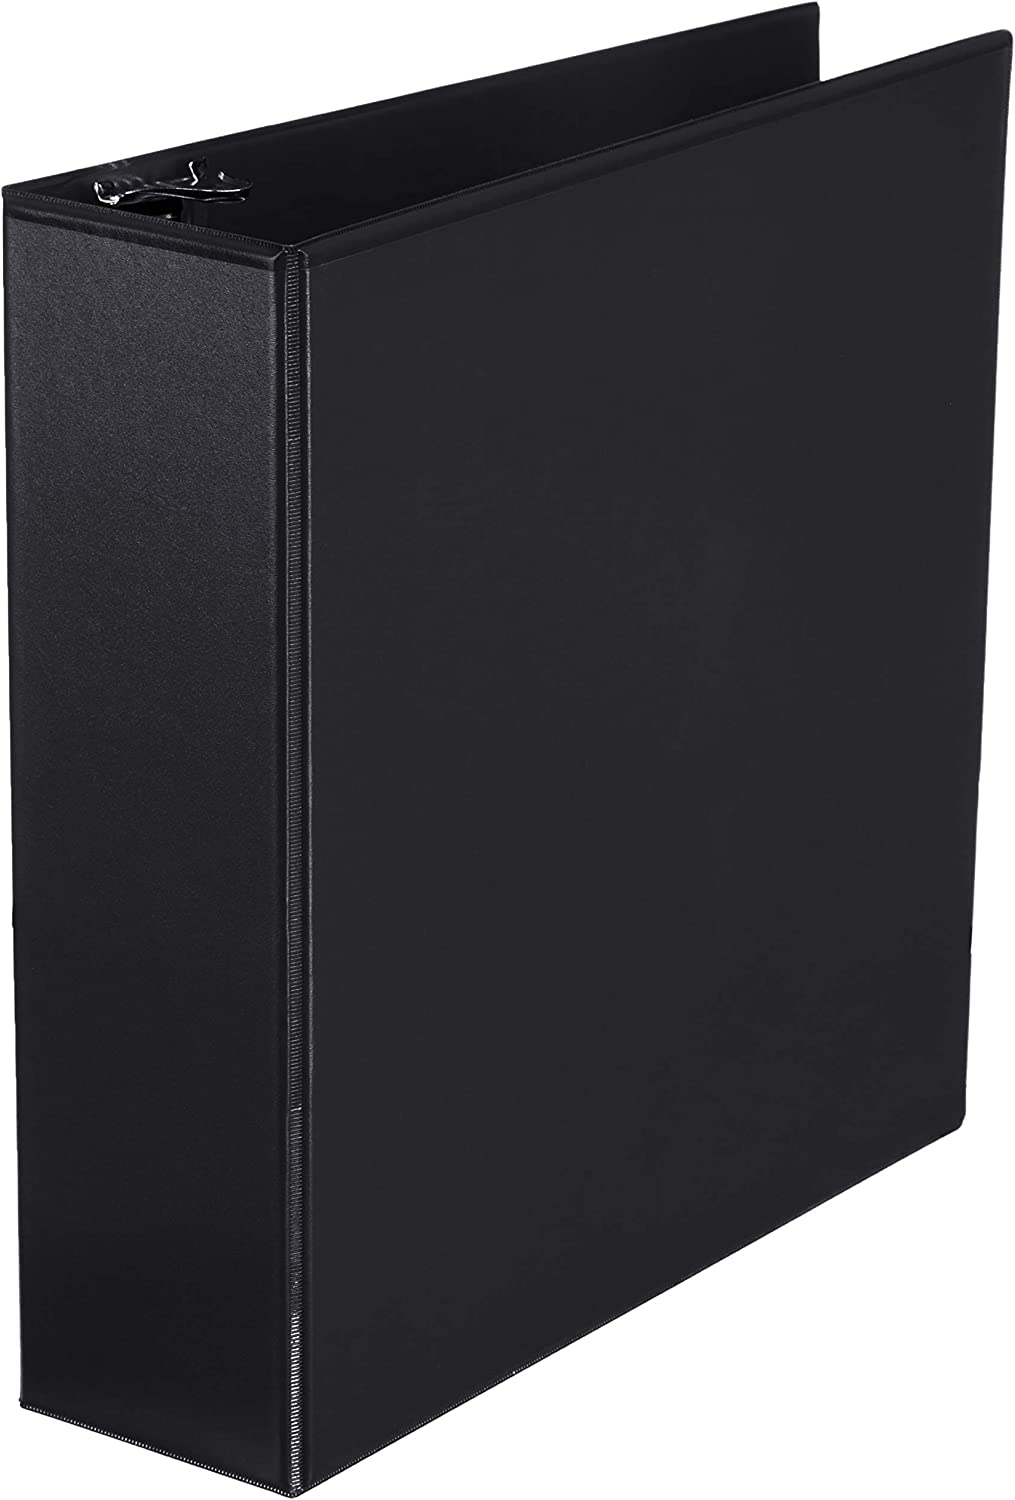 AmazonBasics 3-Inch Round Ring Binder, Black, View, 12-Pack